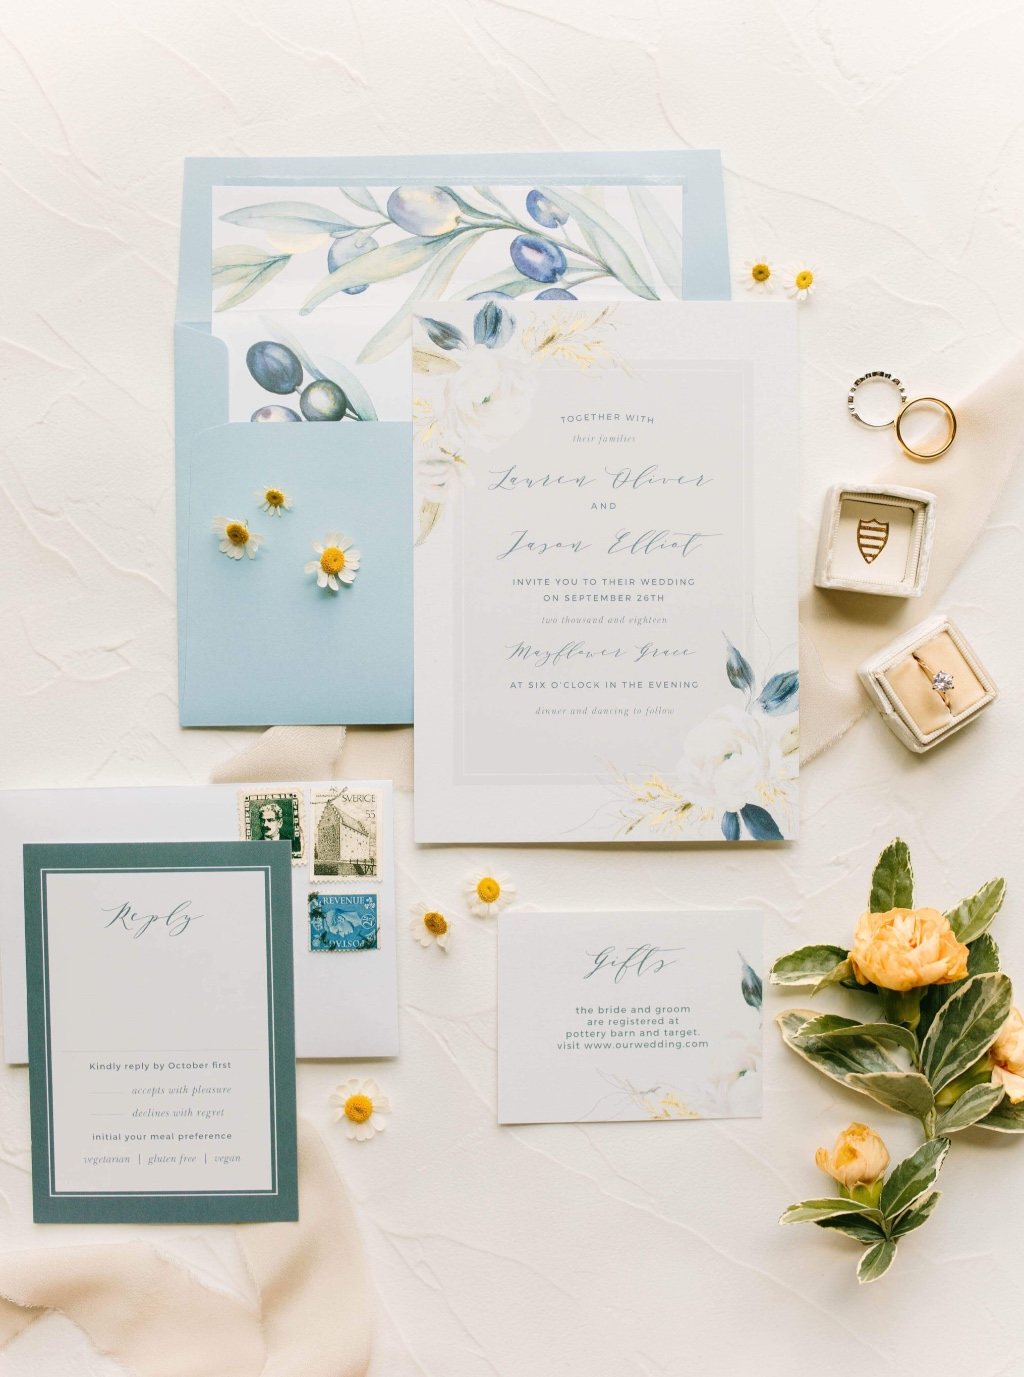 Create your own vintage vibes using muted colors and mismatches prints. The Oil Paint Textured Wedding Suite - an all time fav!